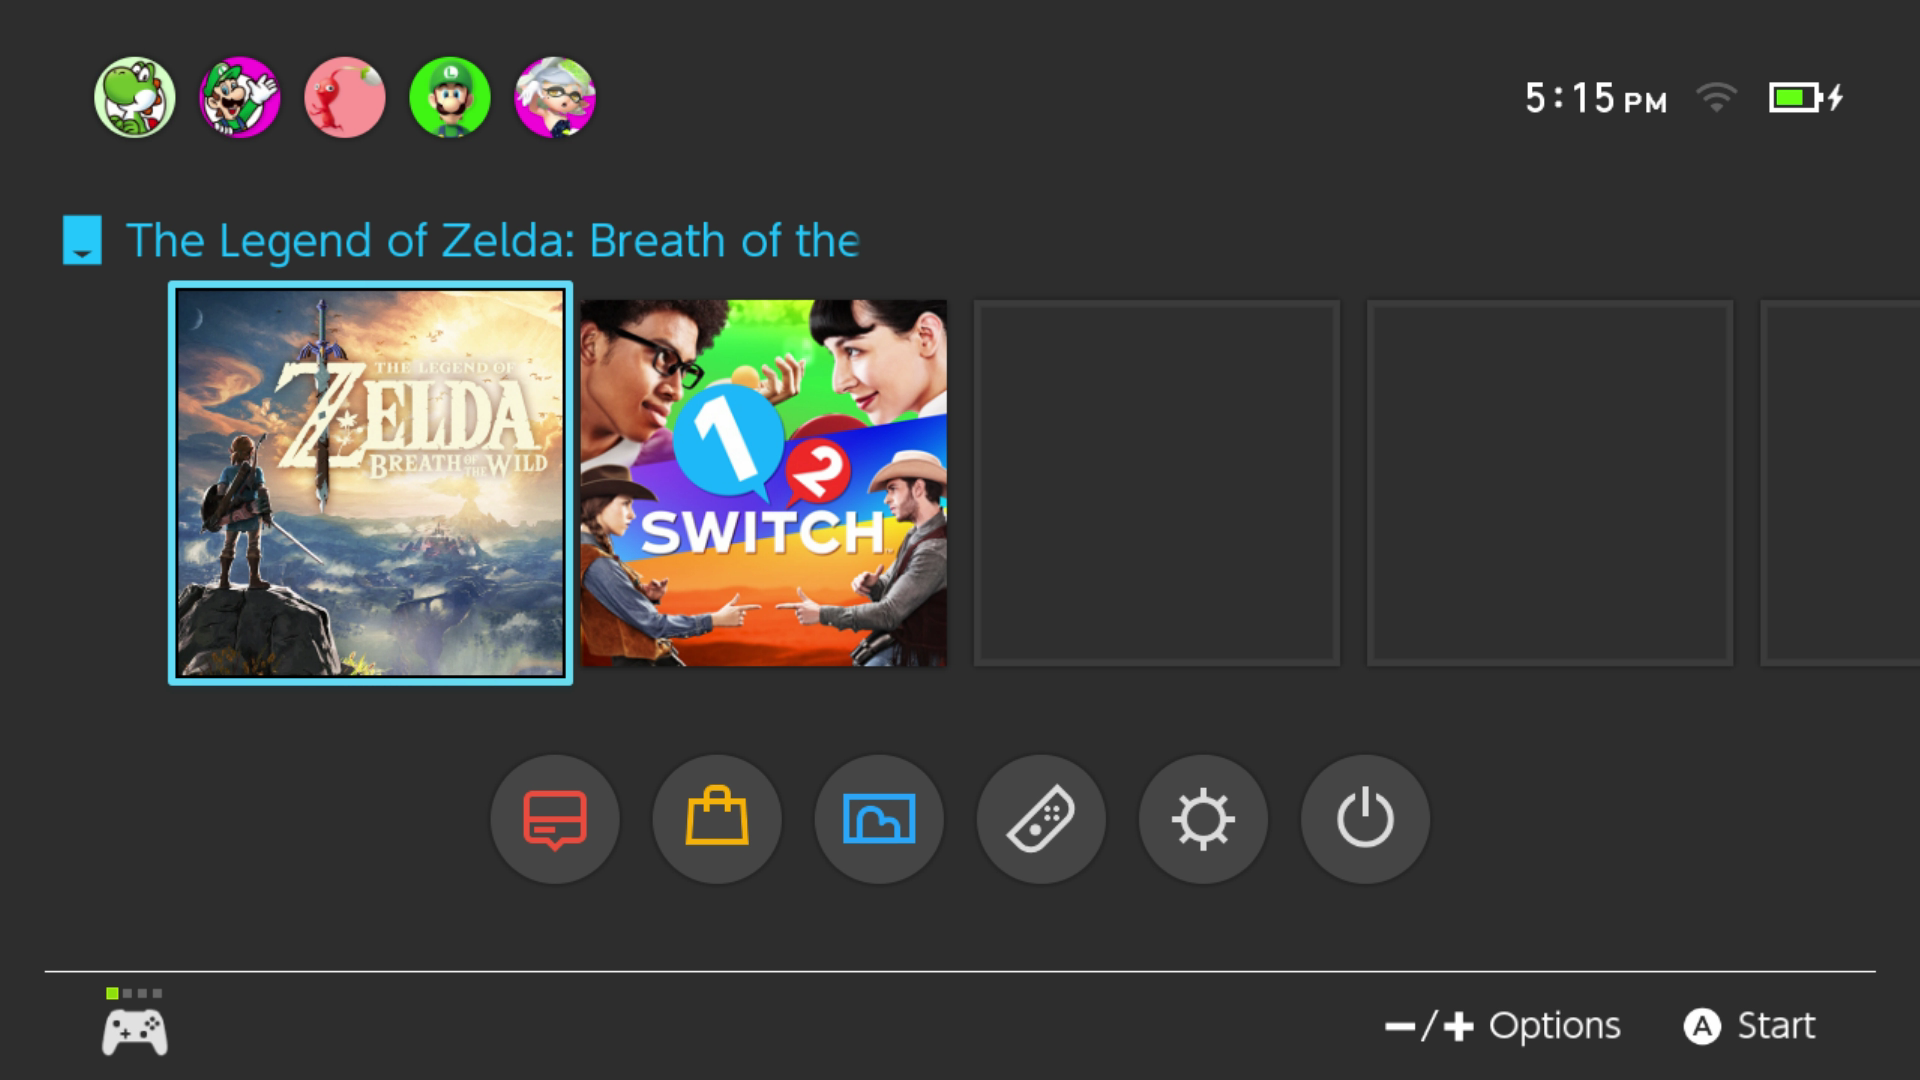 How to play The Legend of Zelda: Breath of the Wild in nine